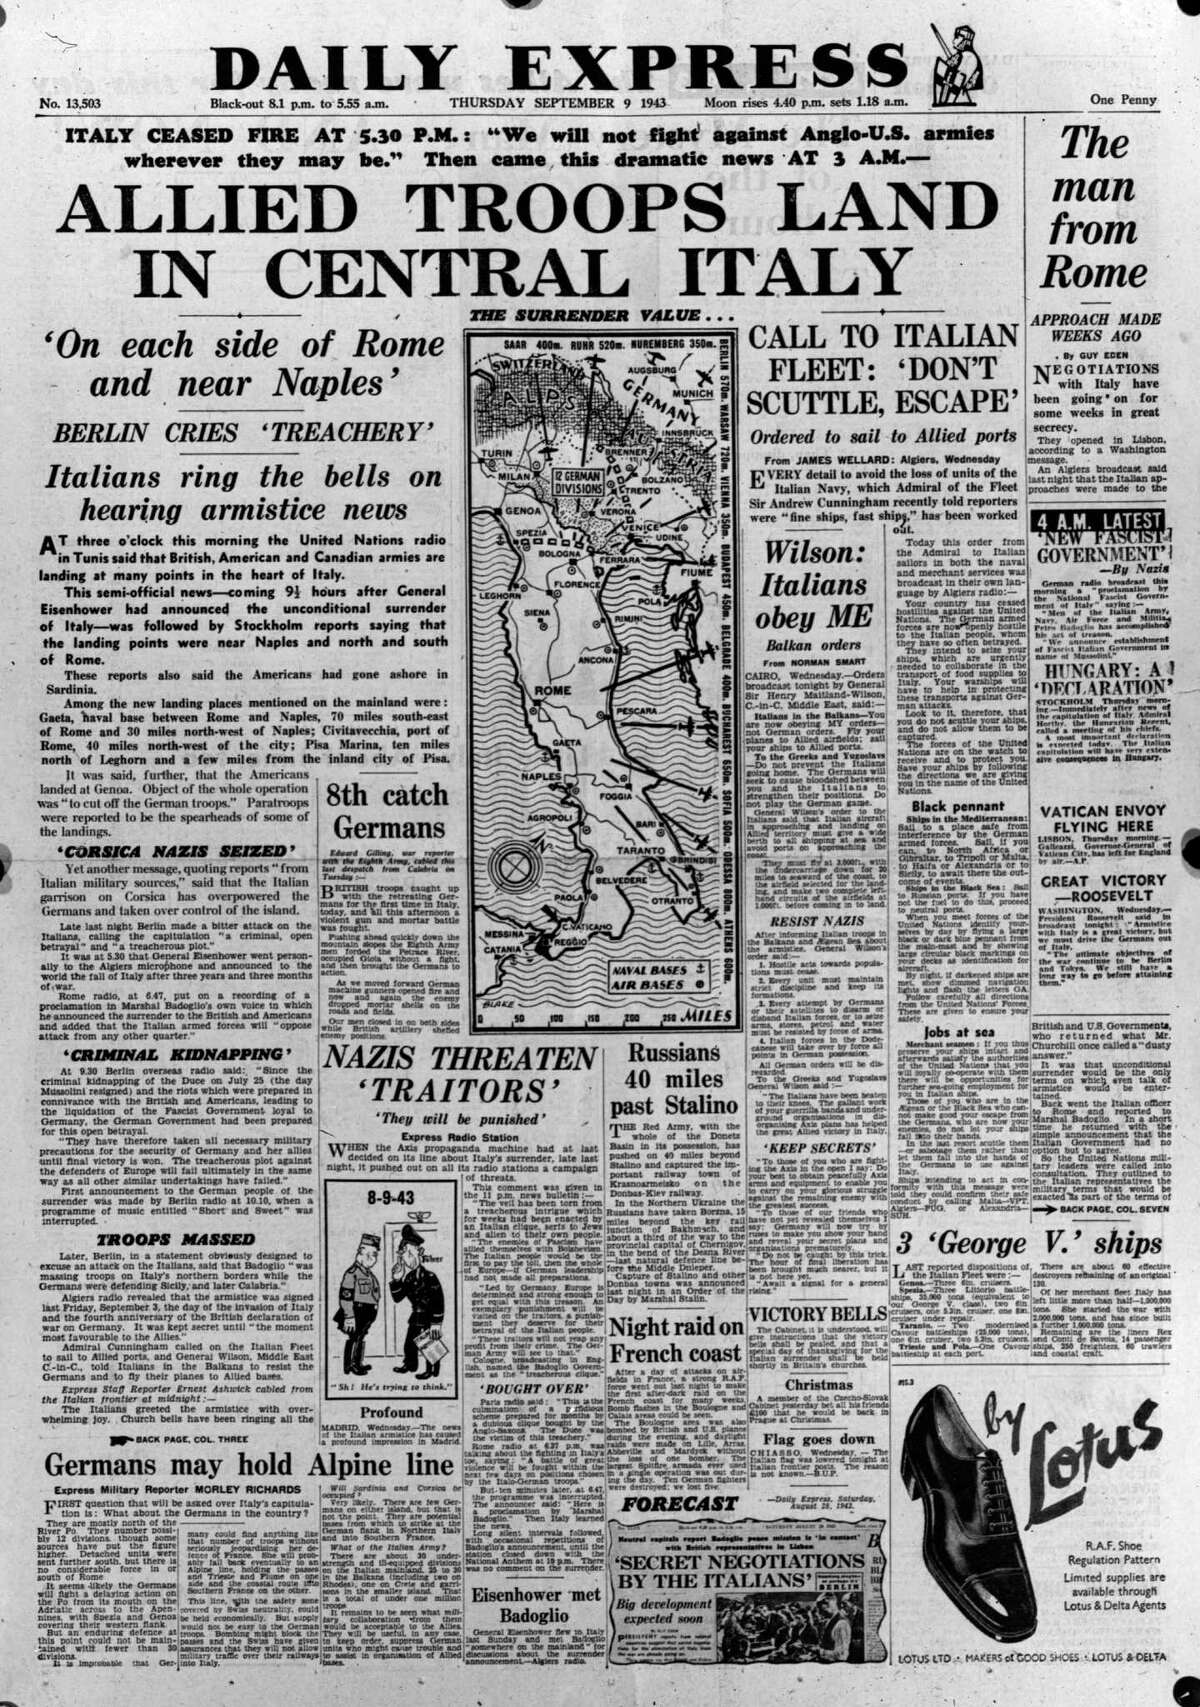 The front page of 'The Daily Express' announcing the invasion of Italy.